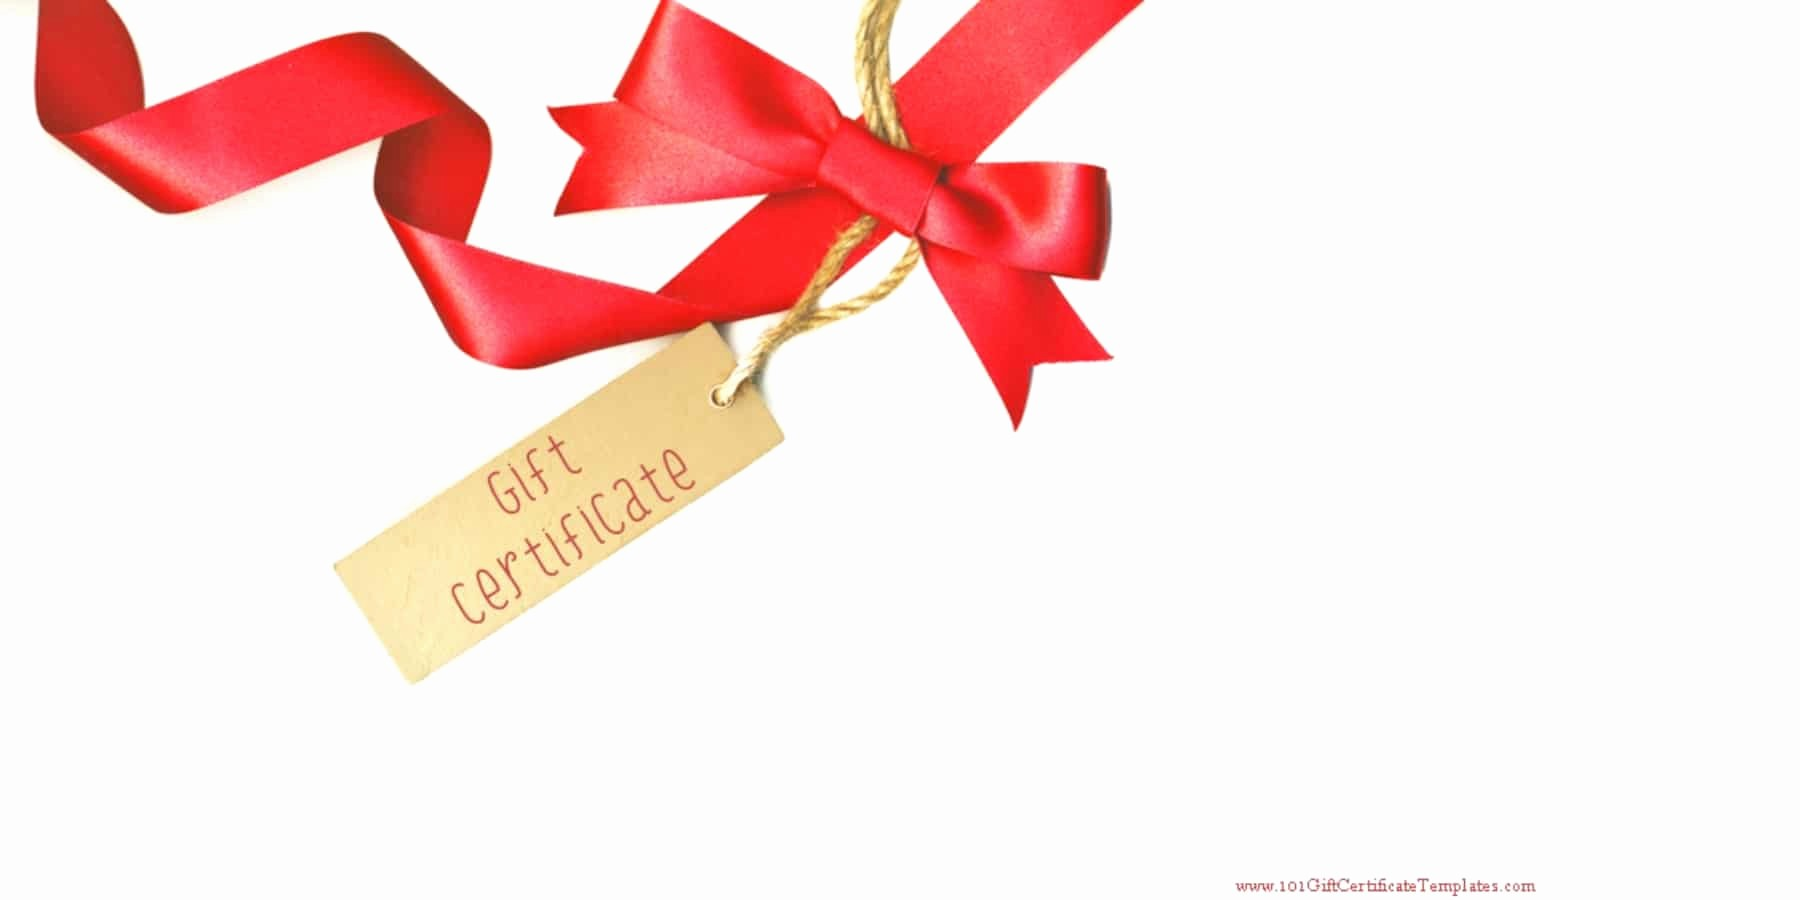 Free Gift Card Template Download Awesome Printable Gift Certificate Templates